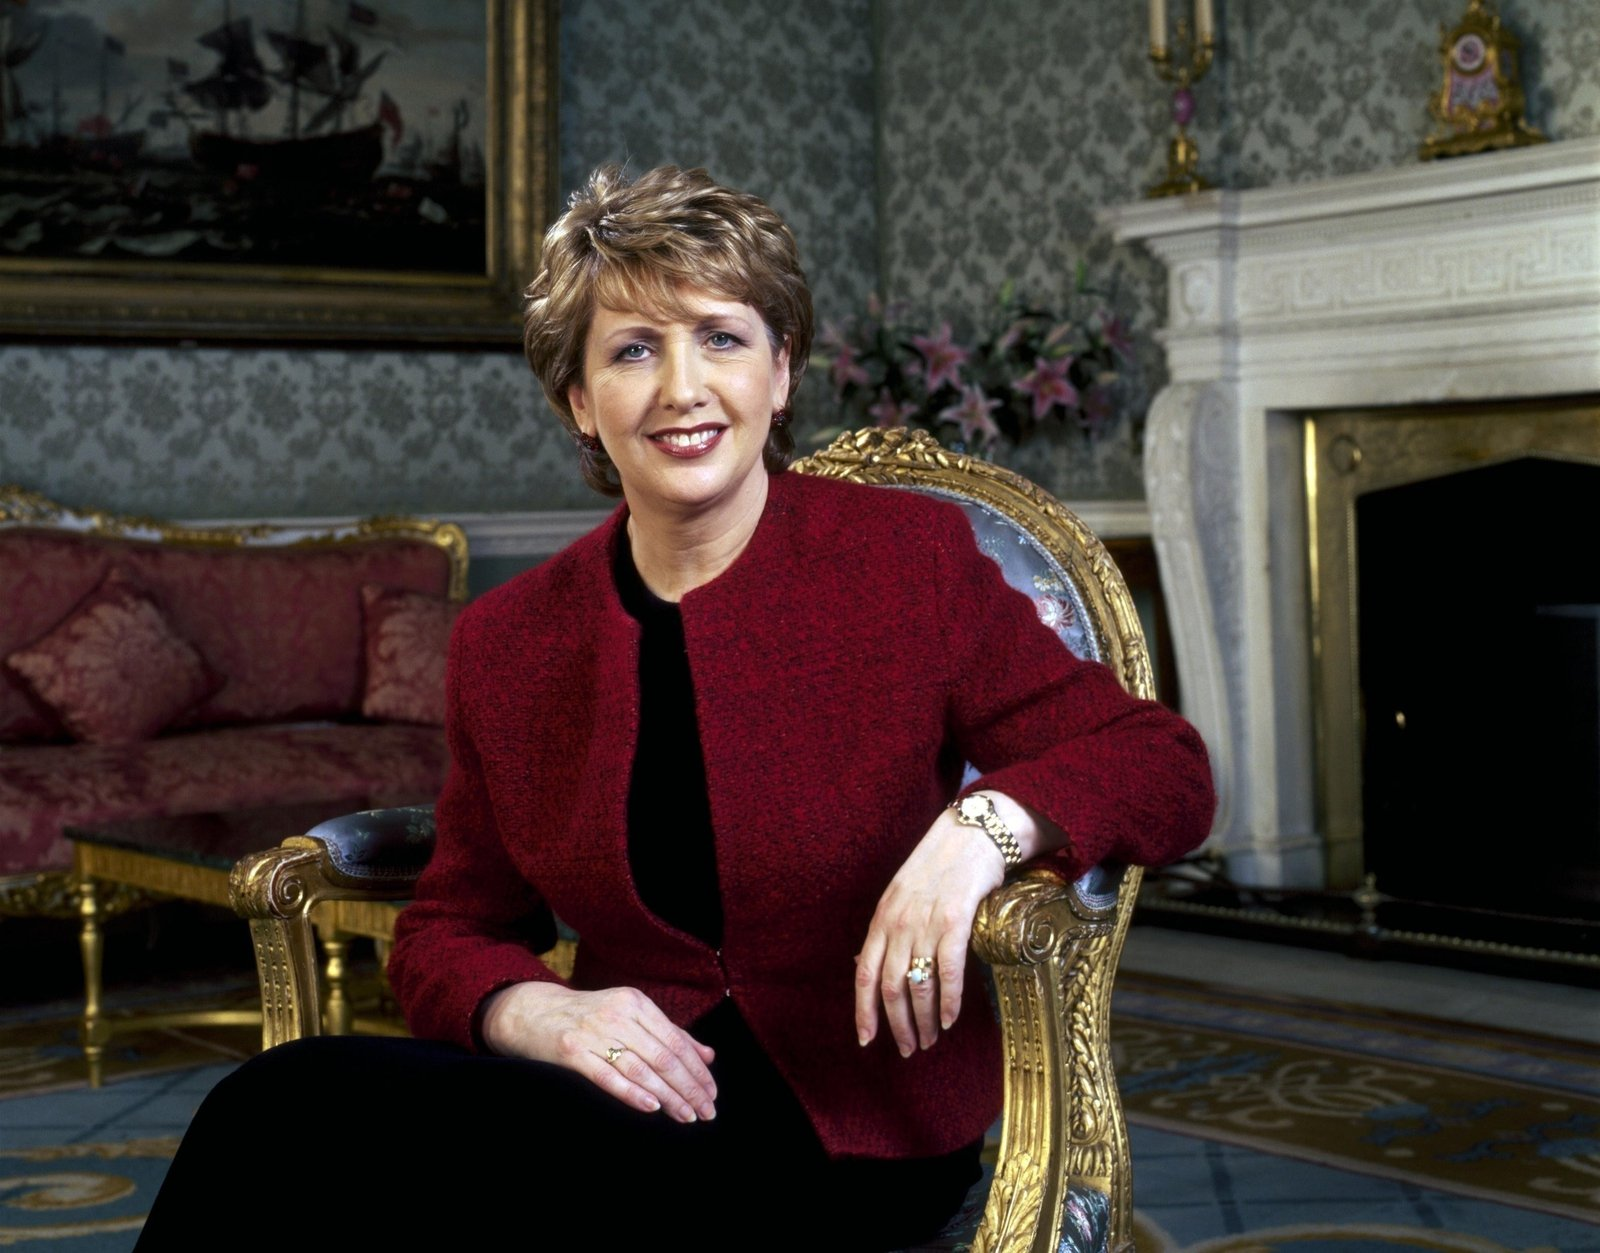 Image - Mary McAleese, President from 1997 - 2011